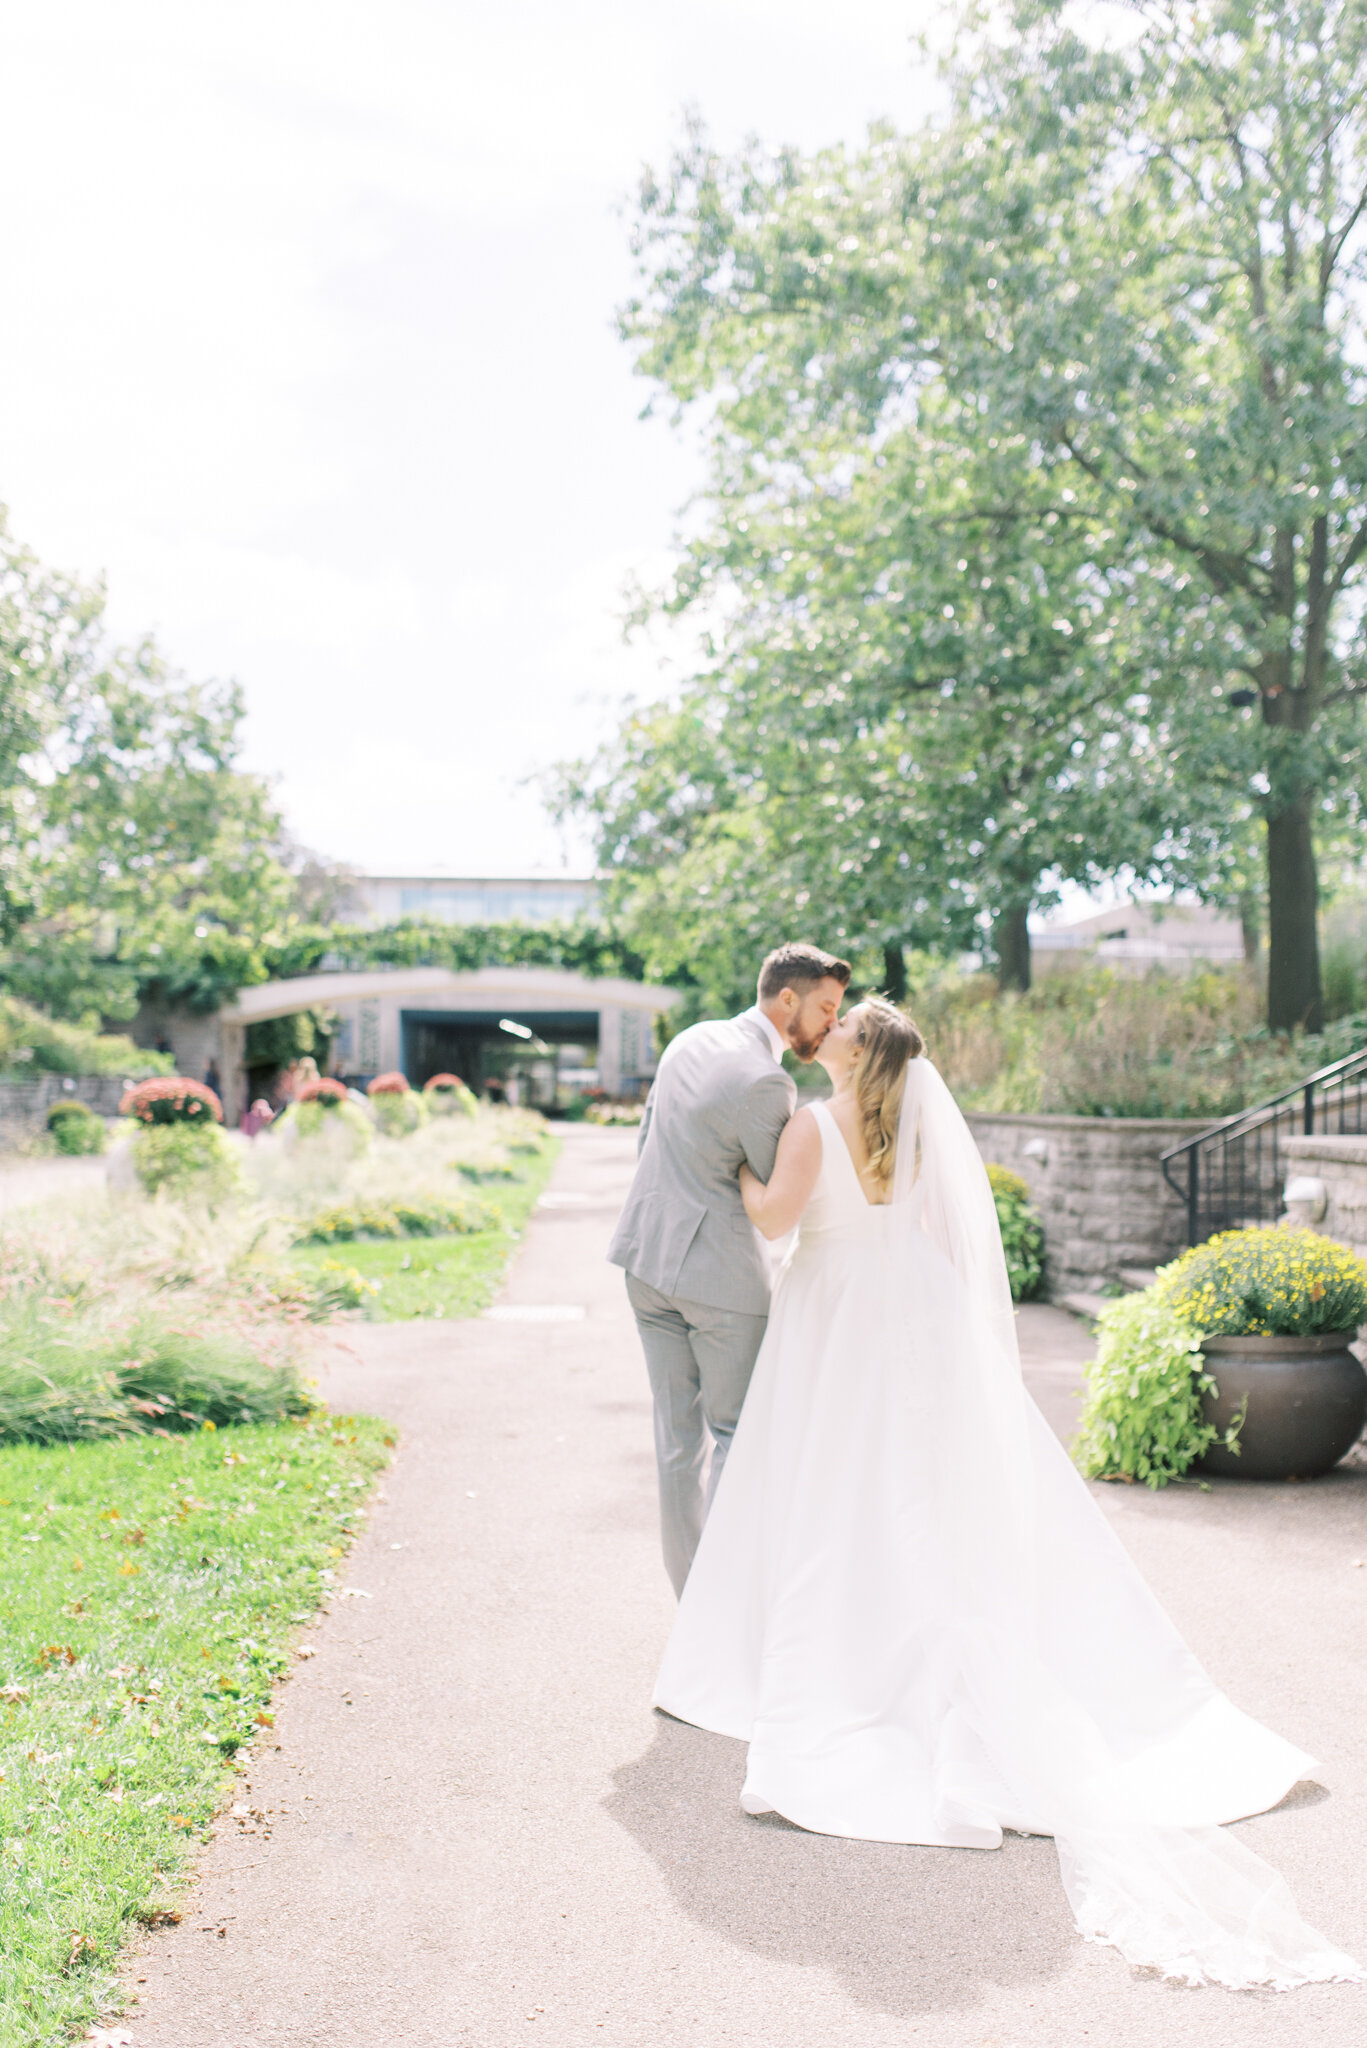 Royal Botanical Gardens Wedding Photos